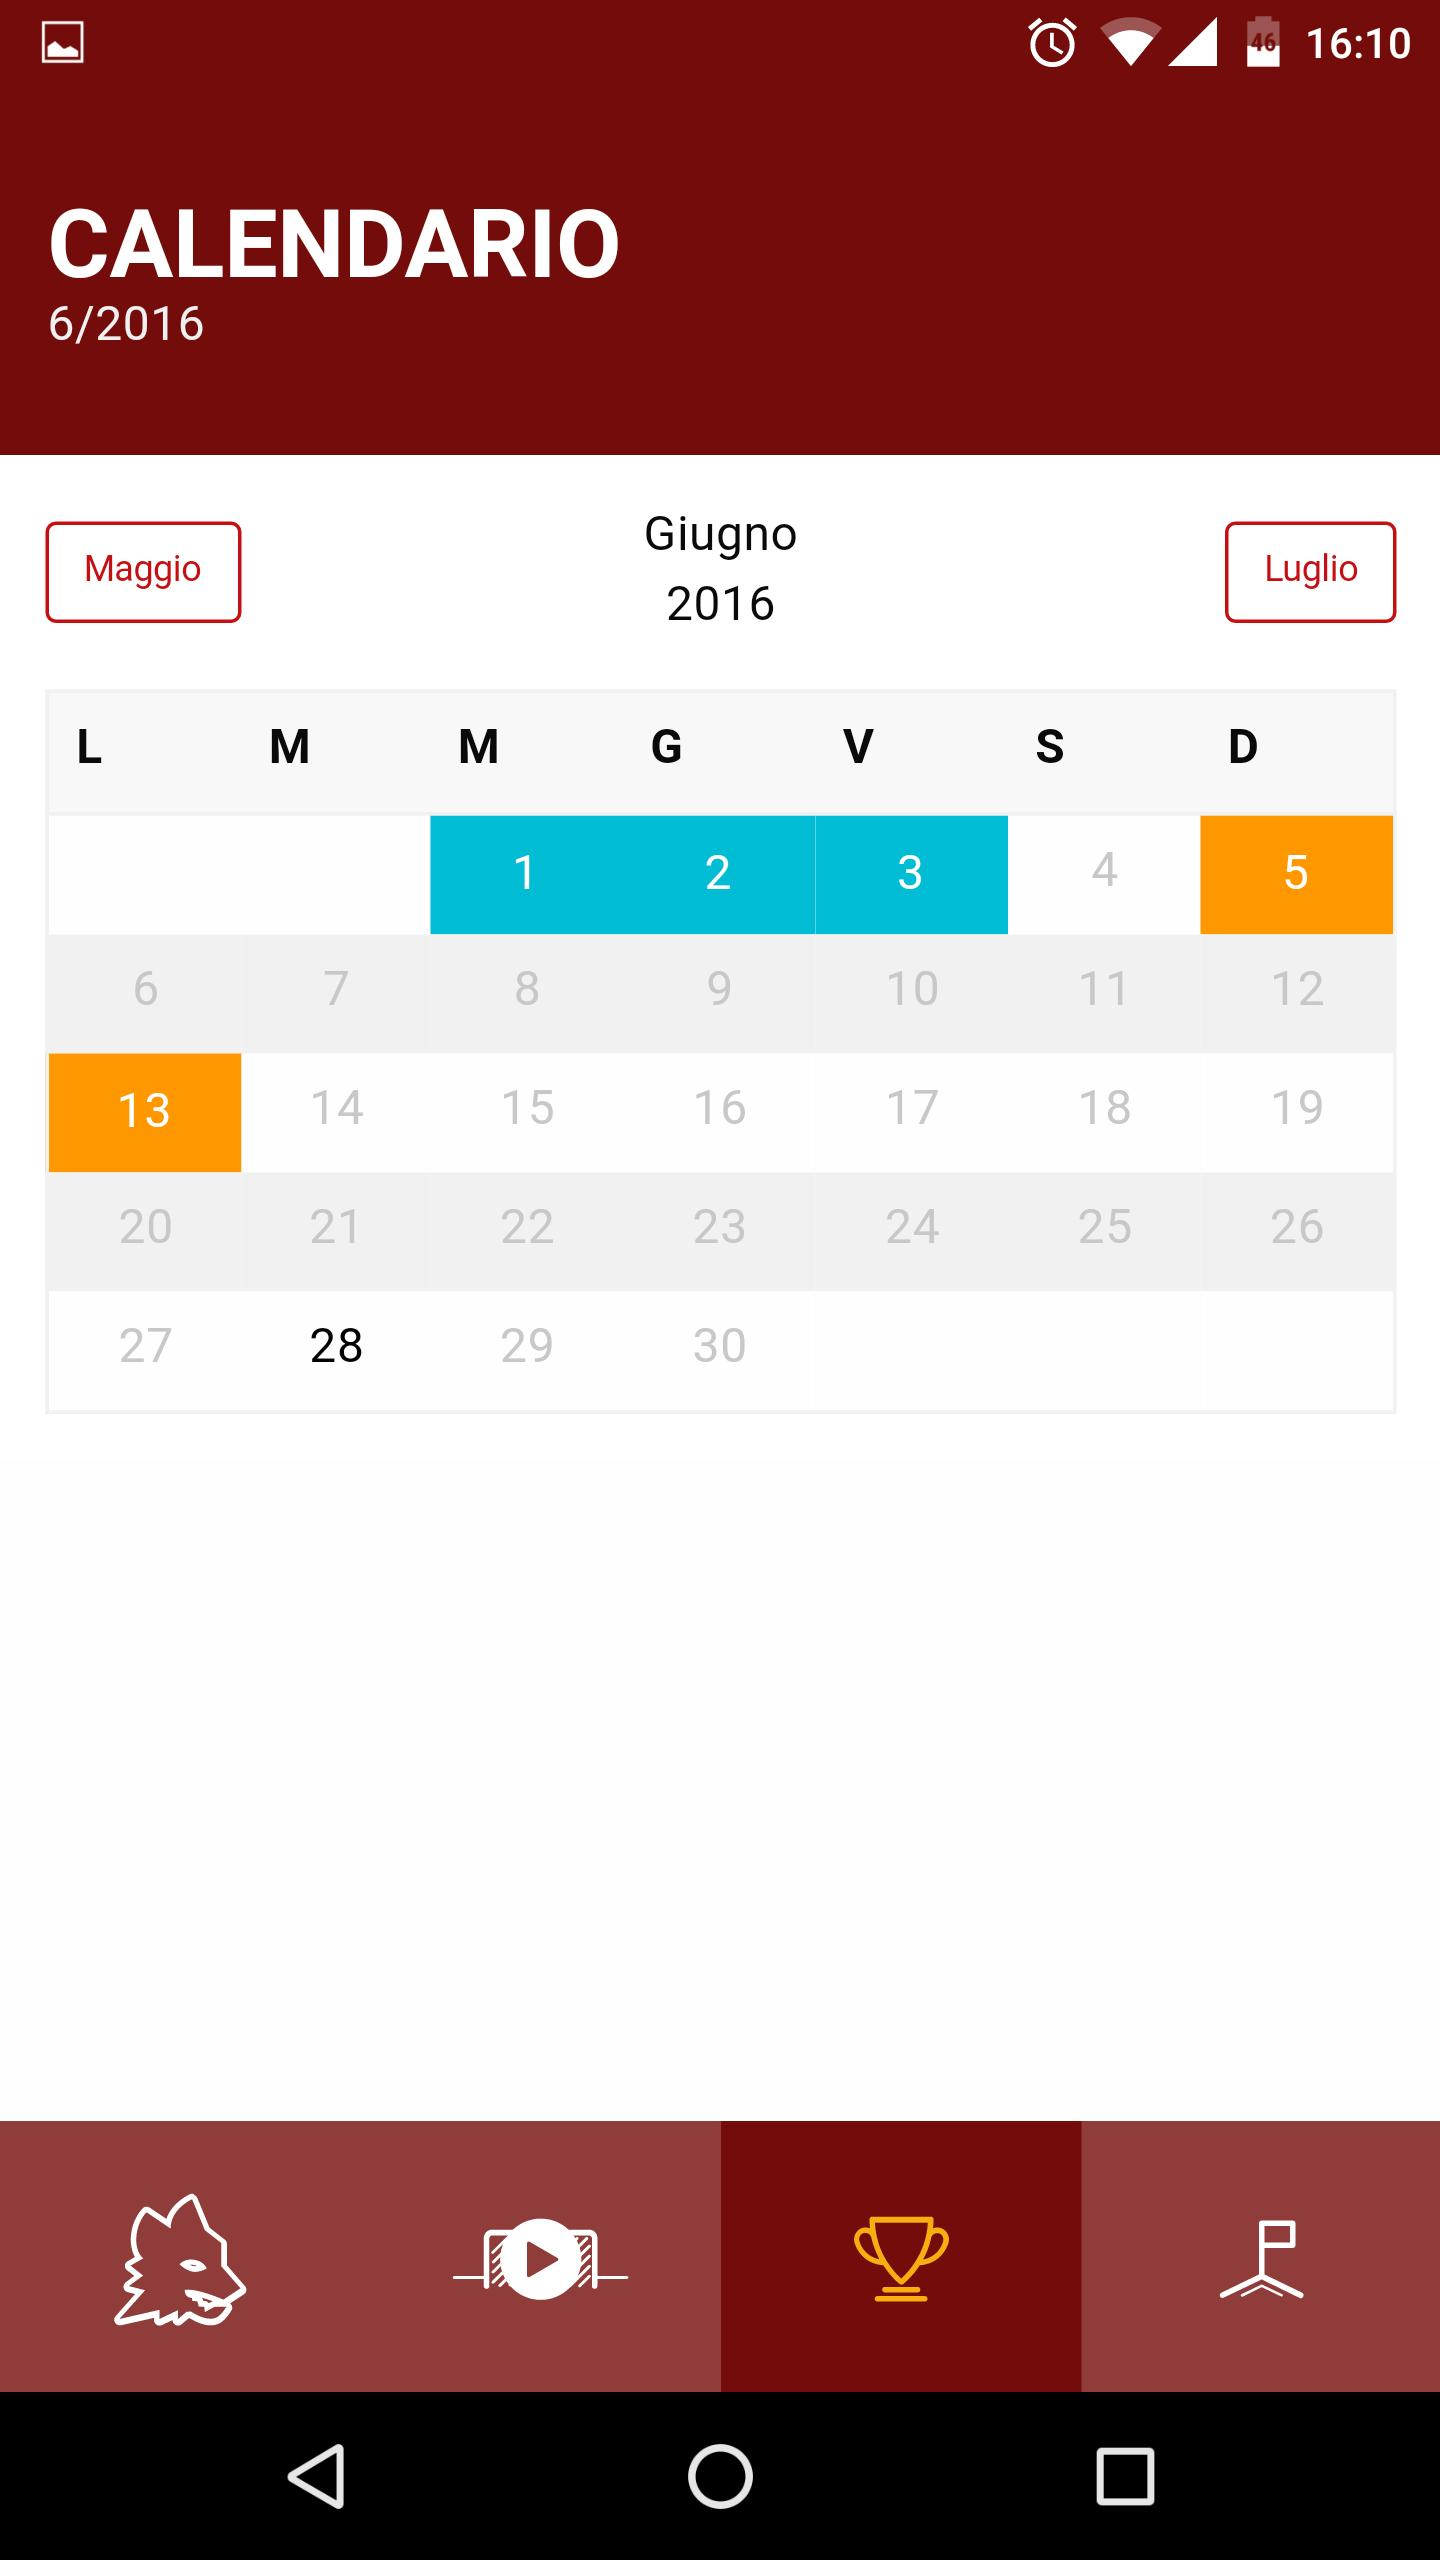 Calendario Asroma.As Roma System For Android Apk Download